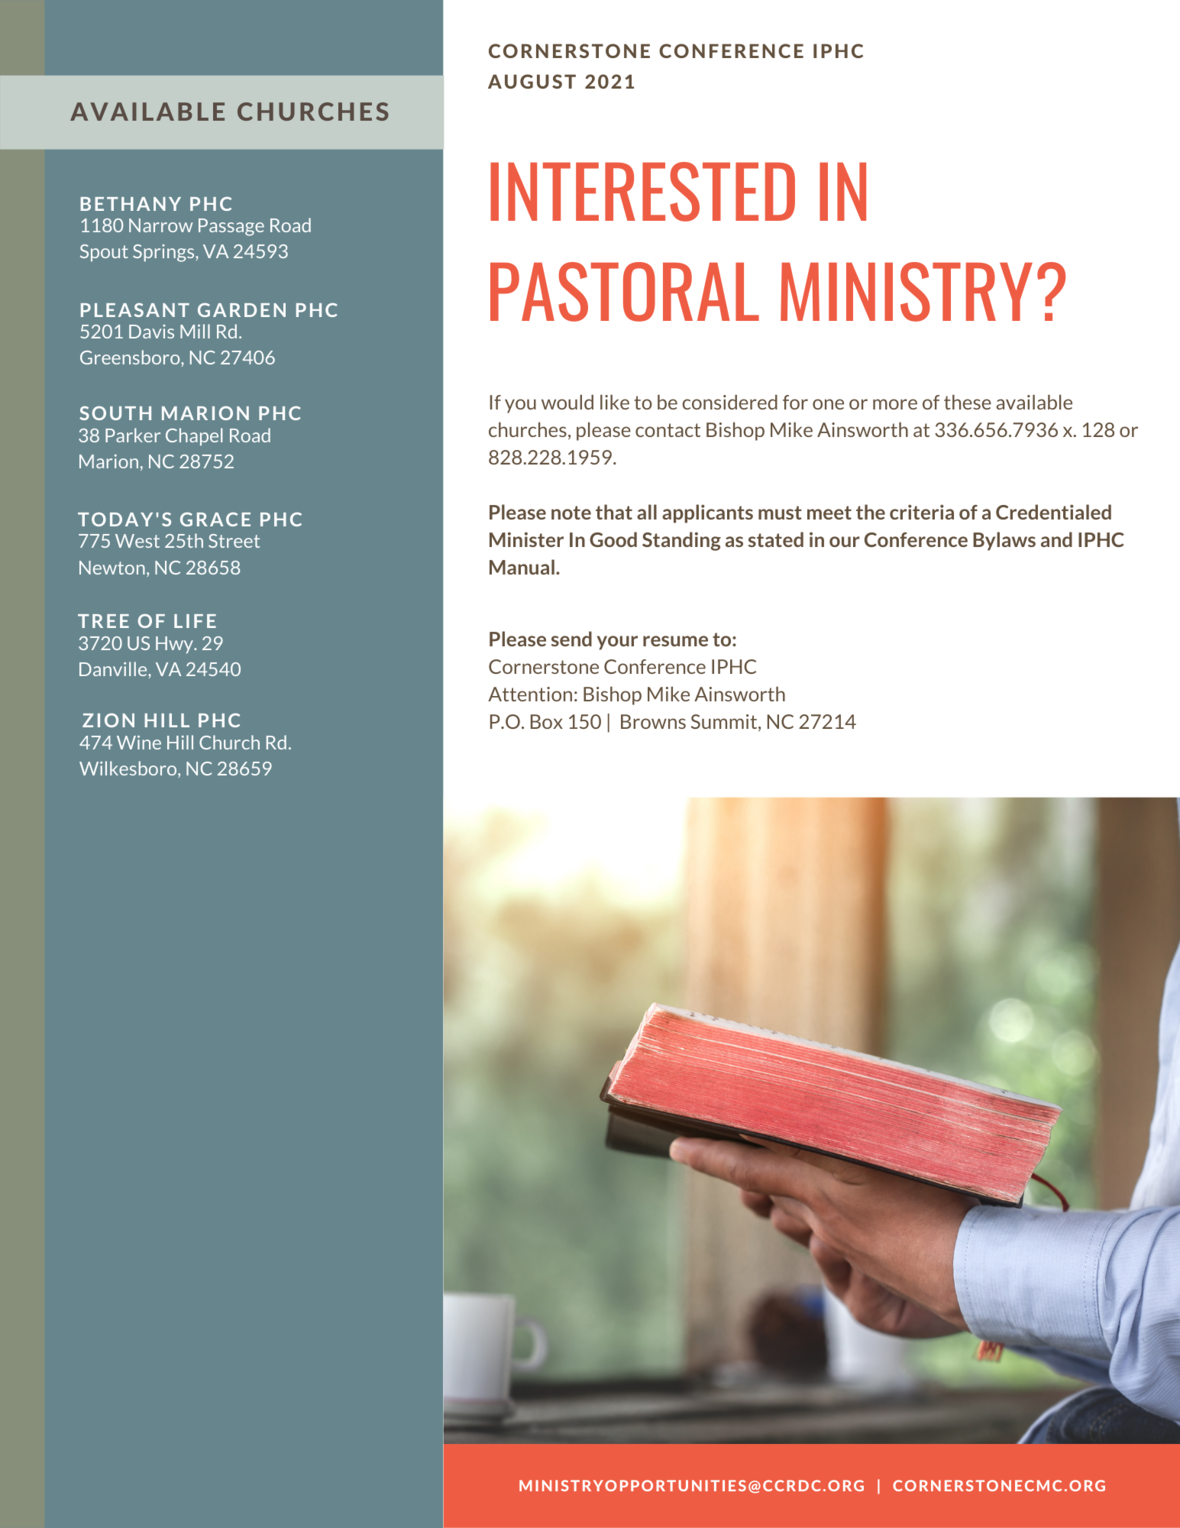 Copy of 2021 CCRDC Ministry Opportunities-2